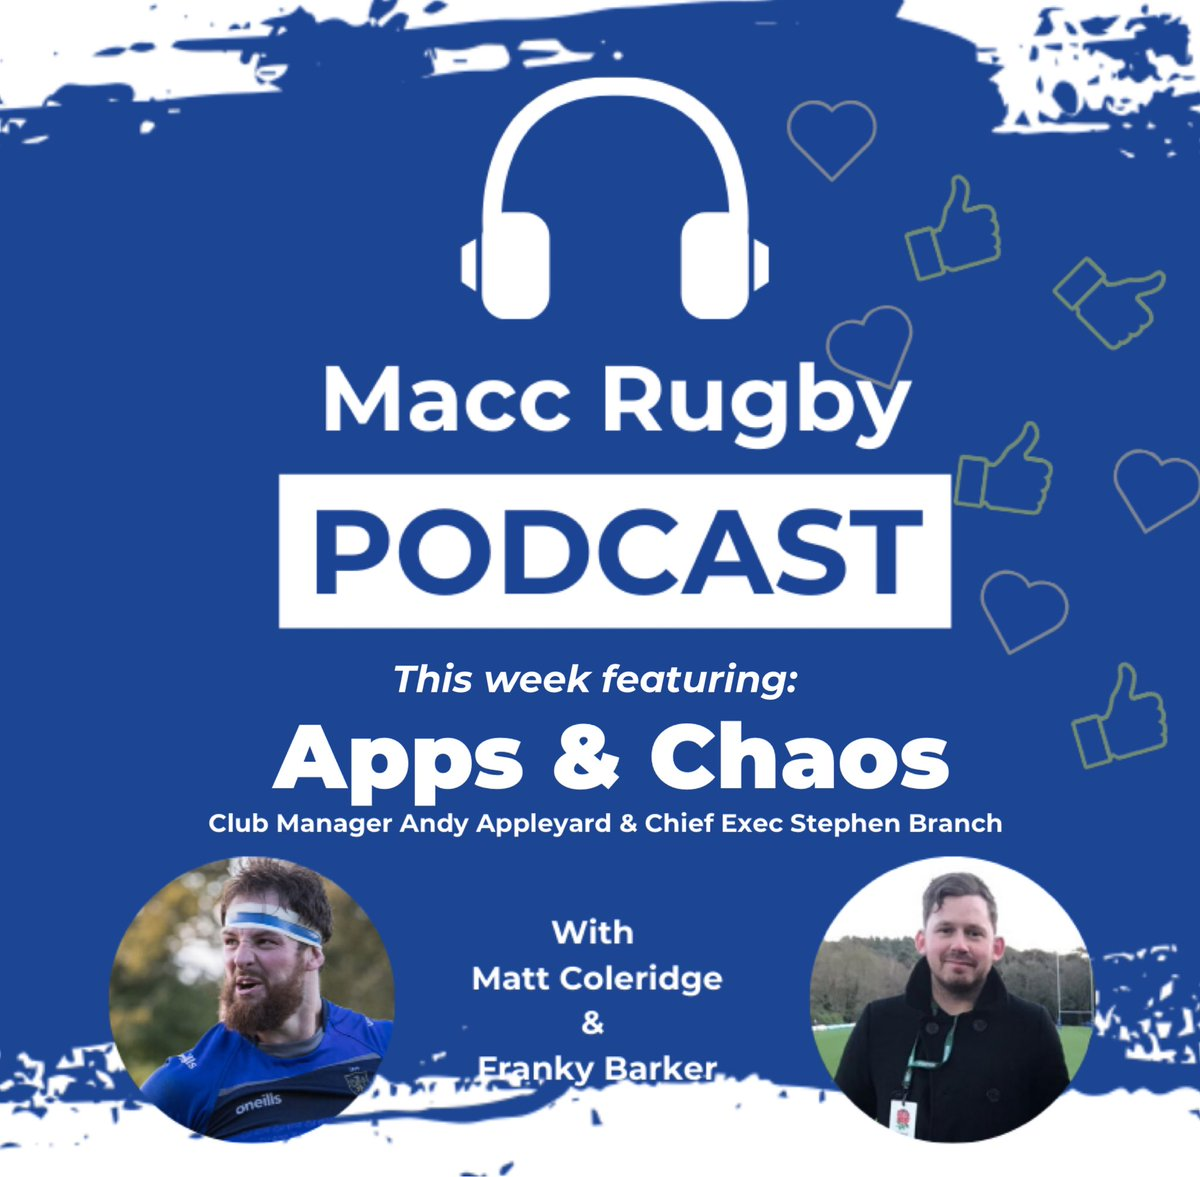 test Twitter Media - POD!!! The pod is out this week with @andy_appleyard and Chaos talking about keeping the club alive during the pandemic and what's coming up!! Join @KemptownAnimal  wherever you get your pods or via https://t.co/fSfZDMGgXu https://t.co/d8wE2Qq1n8